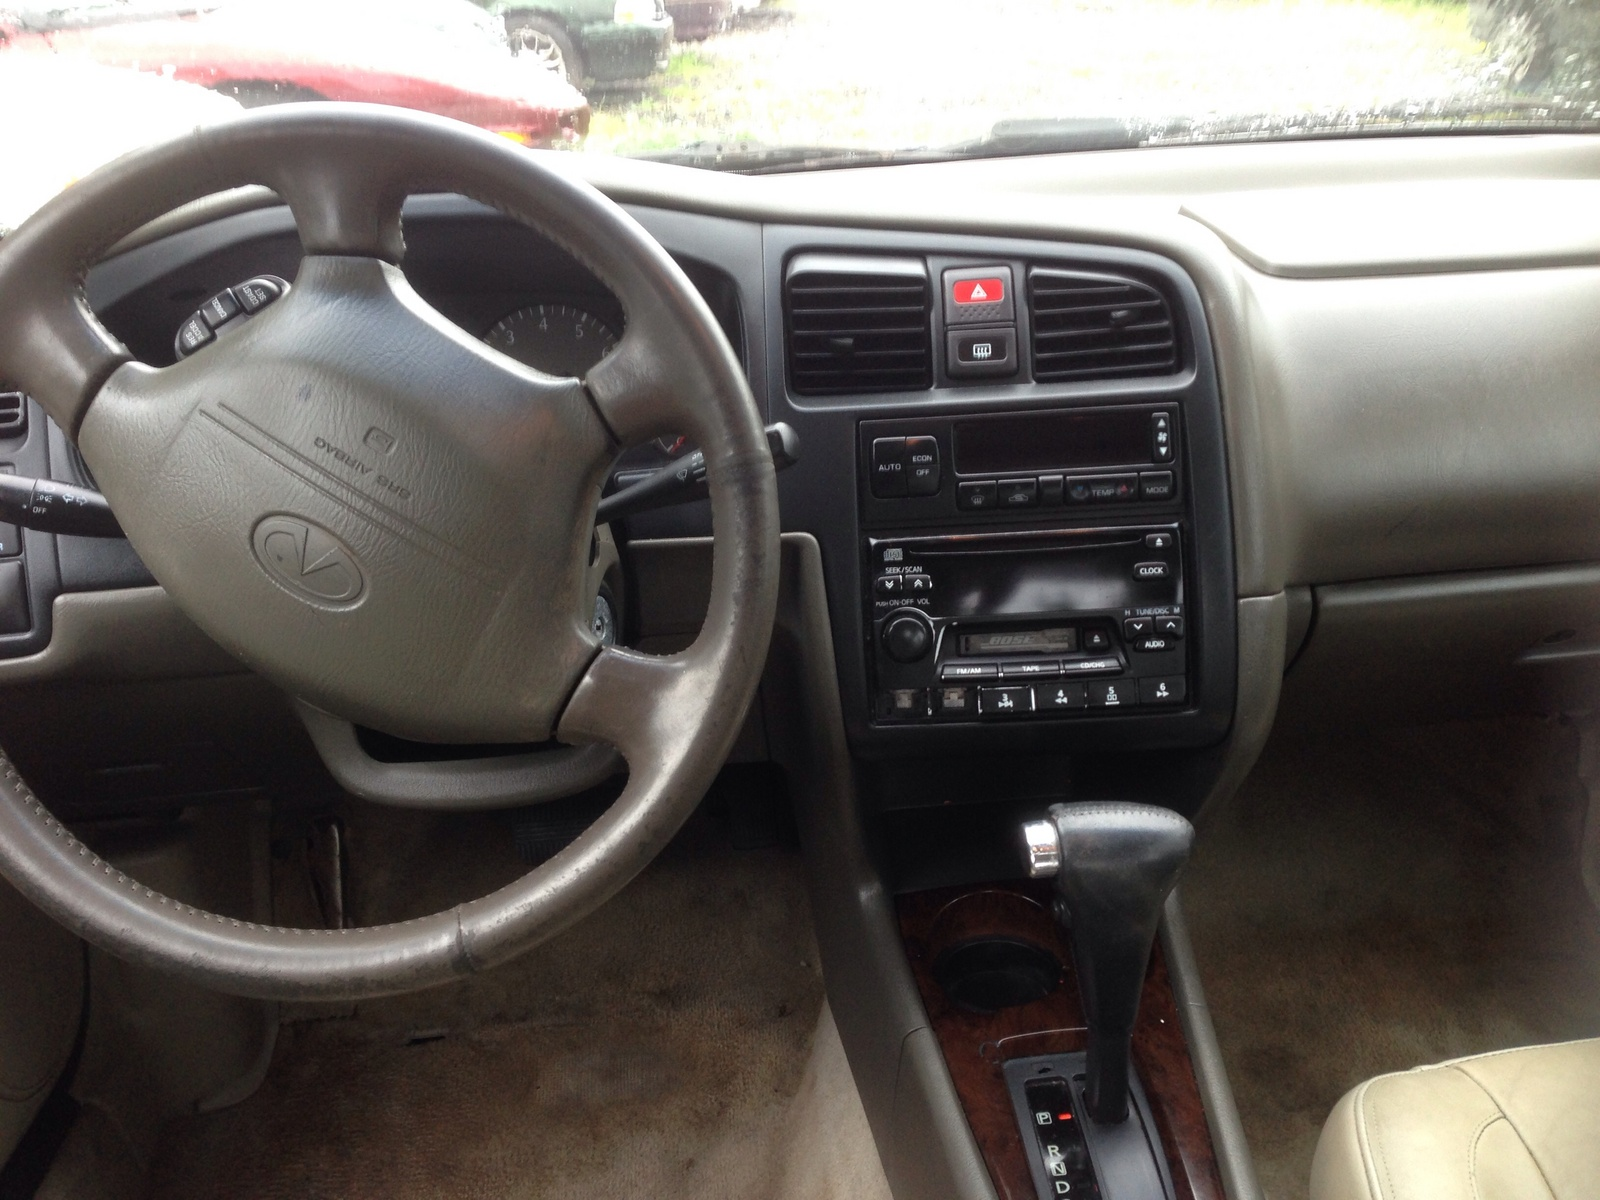 Picture of 2001 Infiniti G20 4 Dr STD Sedan, interior